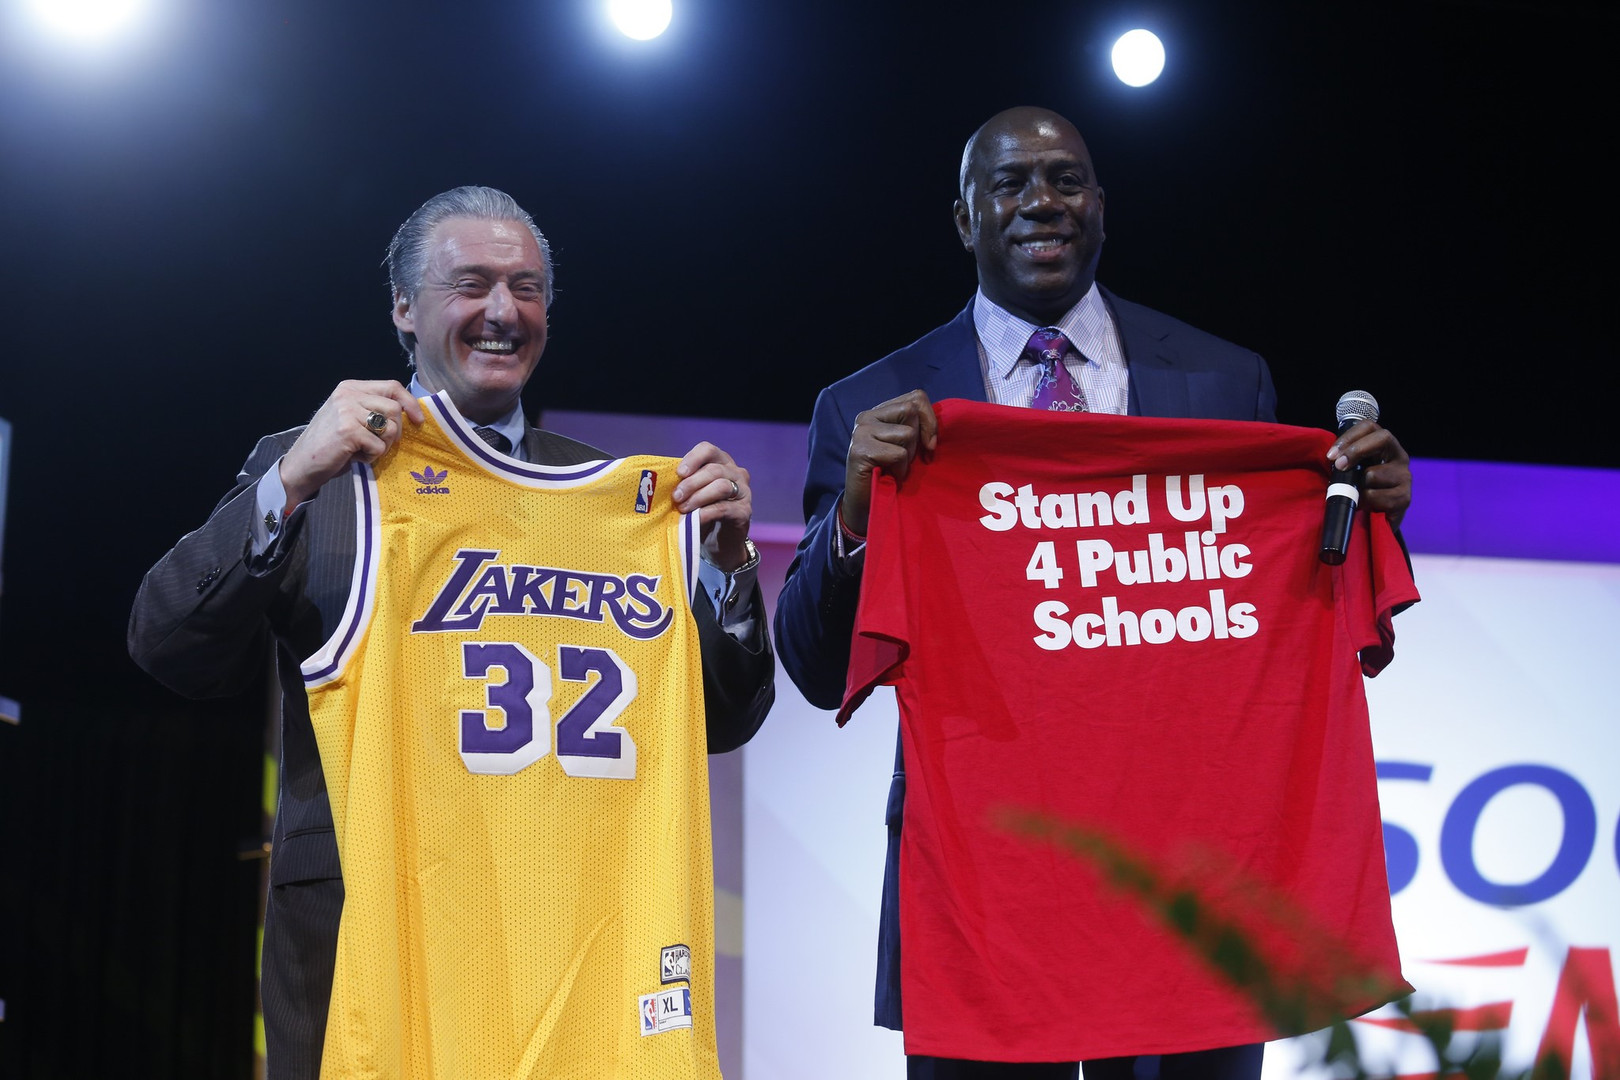 David Pickler and Magic Johnson | Stand Up 4 Public Schools | American Public Education Foundation